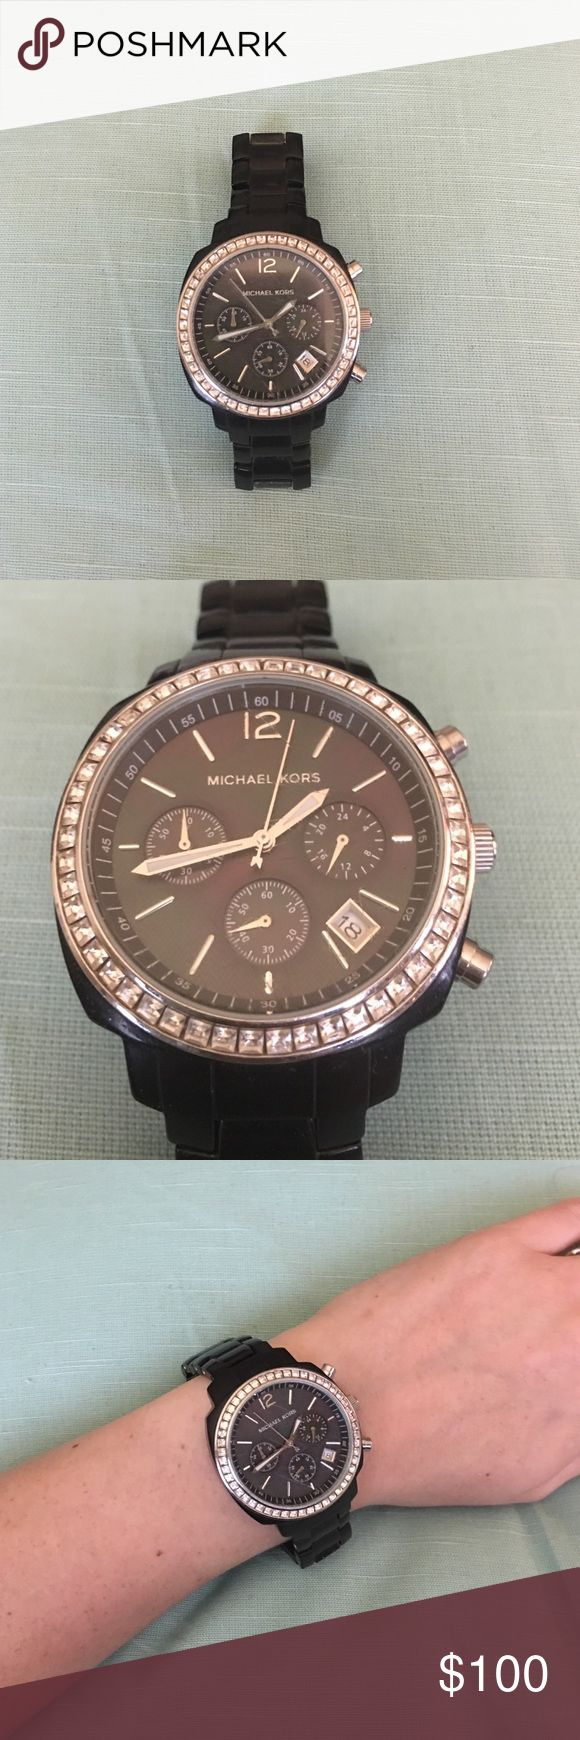 Black Michael Kors Watch Black Michael Kors Watch. Jewels around the actual Watch. Battery works, and it's in good condition. Super stylish. 😍 Michael Kors Accessories Watches